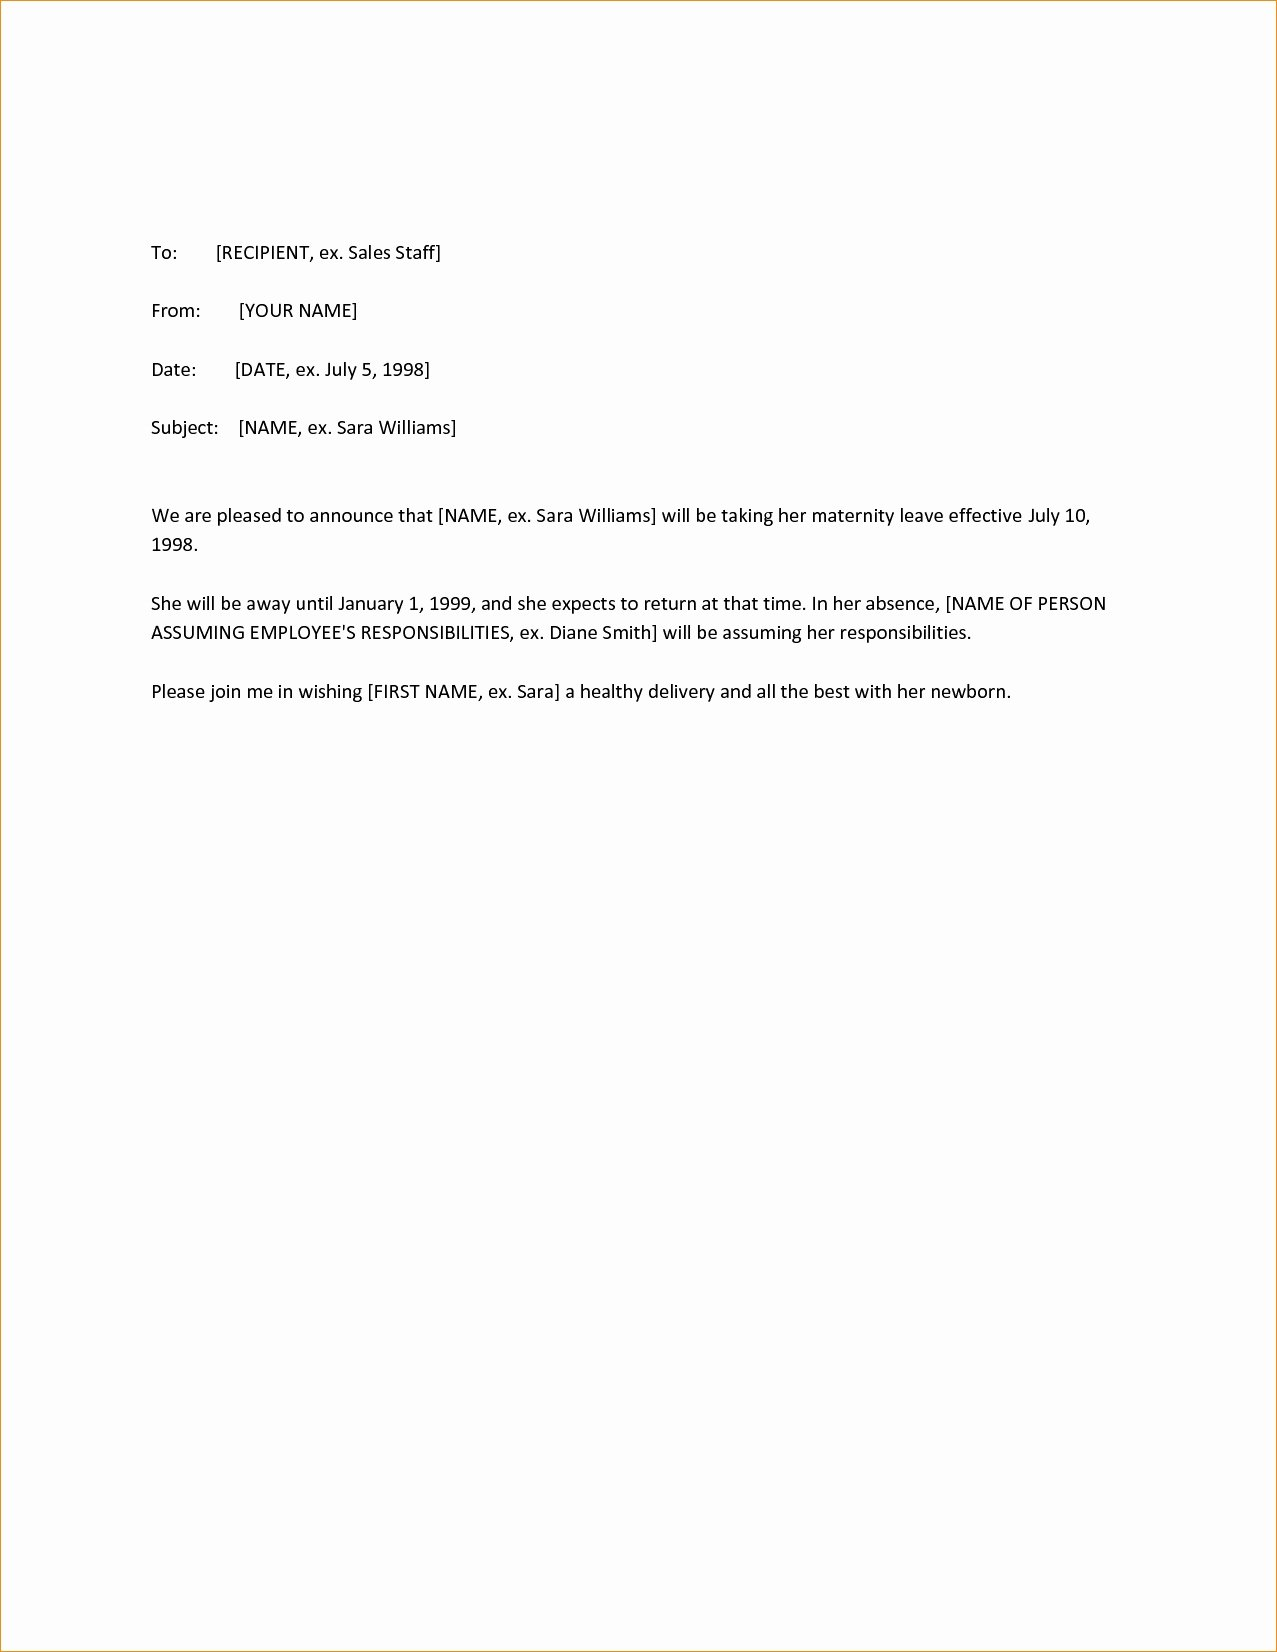 Maternity Leave Letter to Clients Luxury 12 13 Employee Leaving Announcement Letter Samples